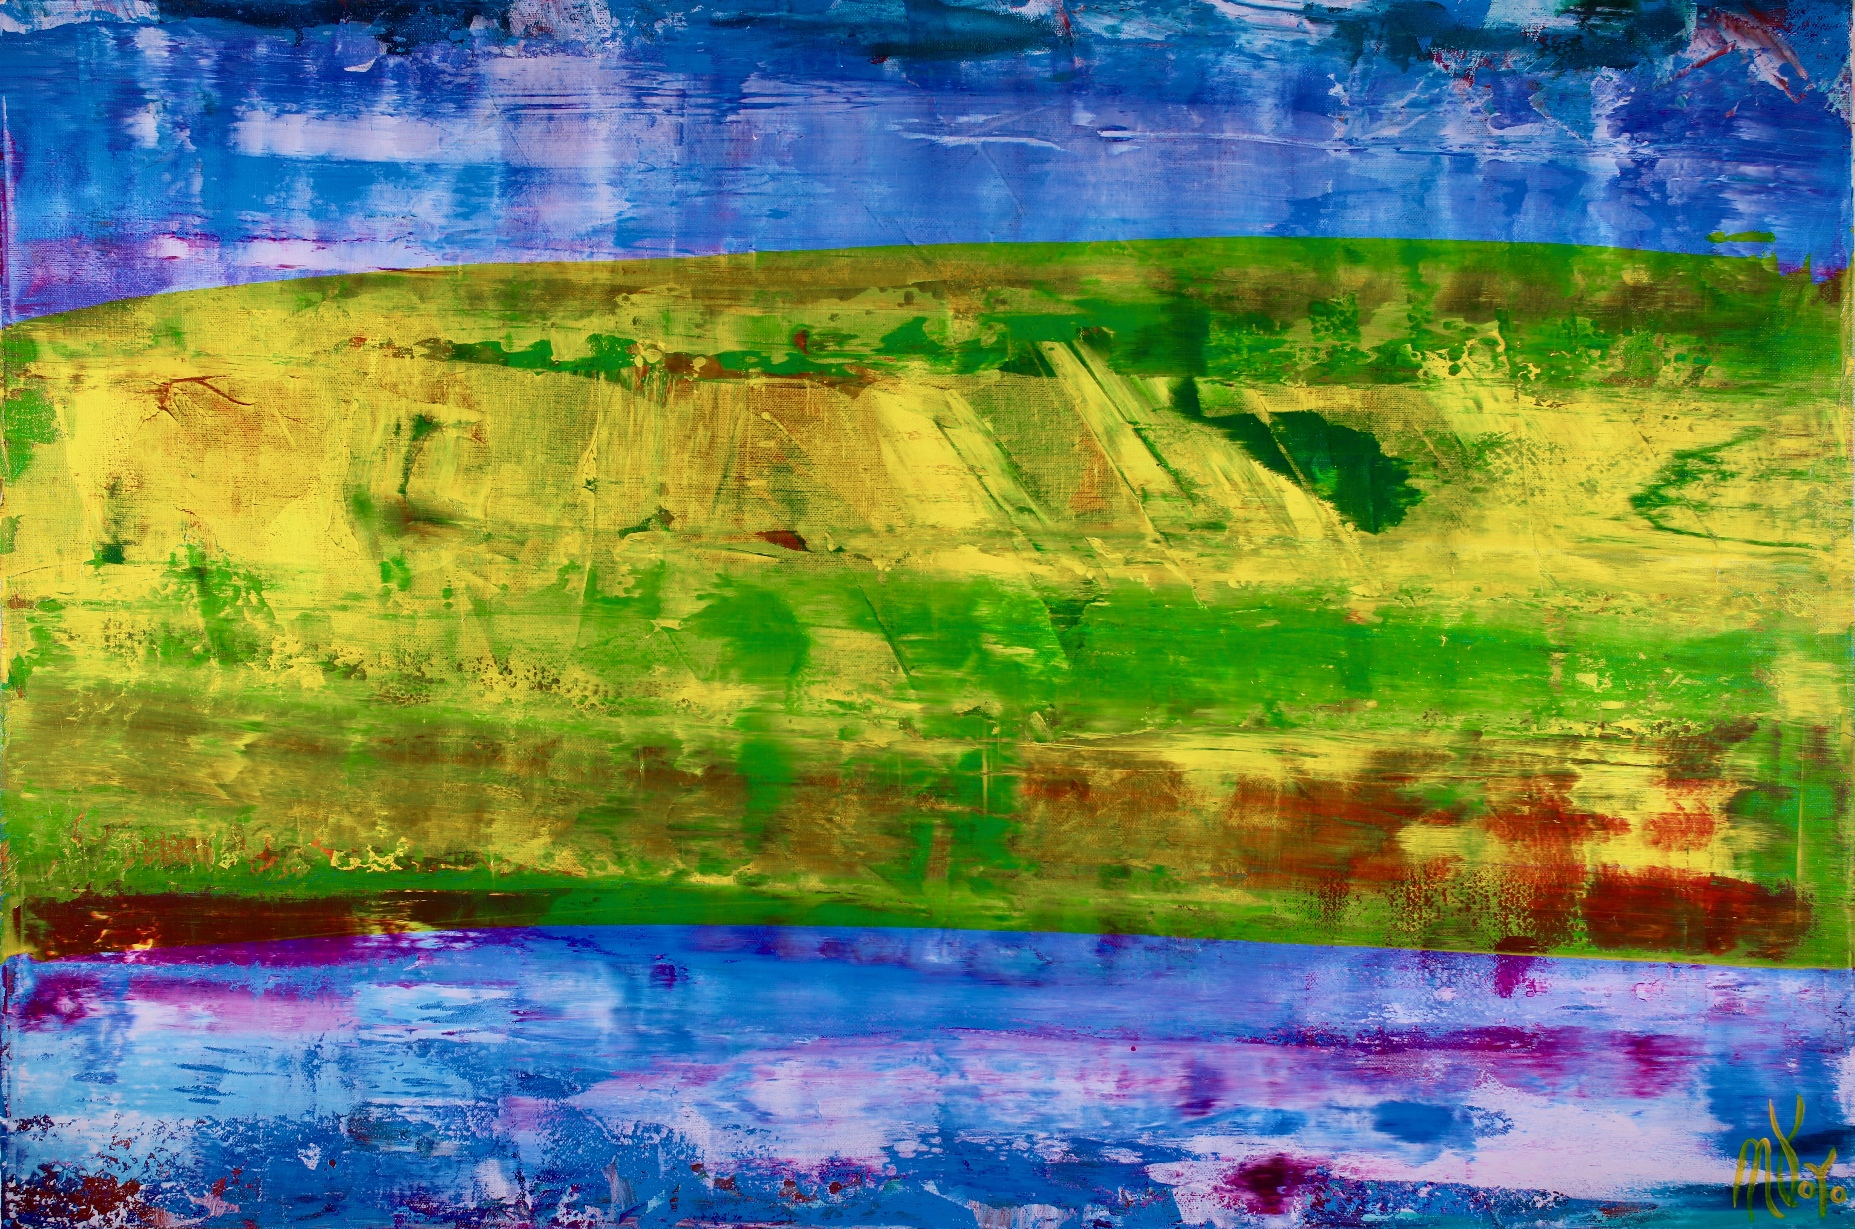 Full Image - Detail - Abstract Landscape |Aerial west coast view by Nestor Toro